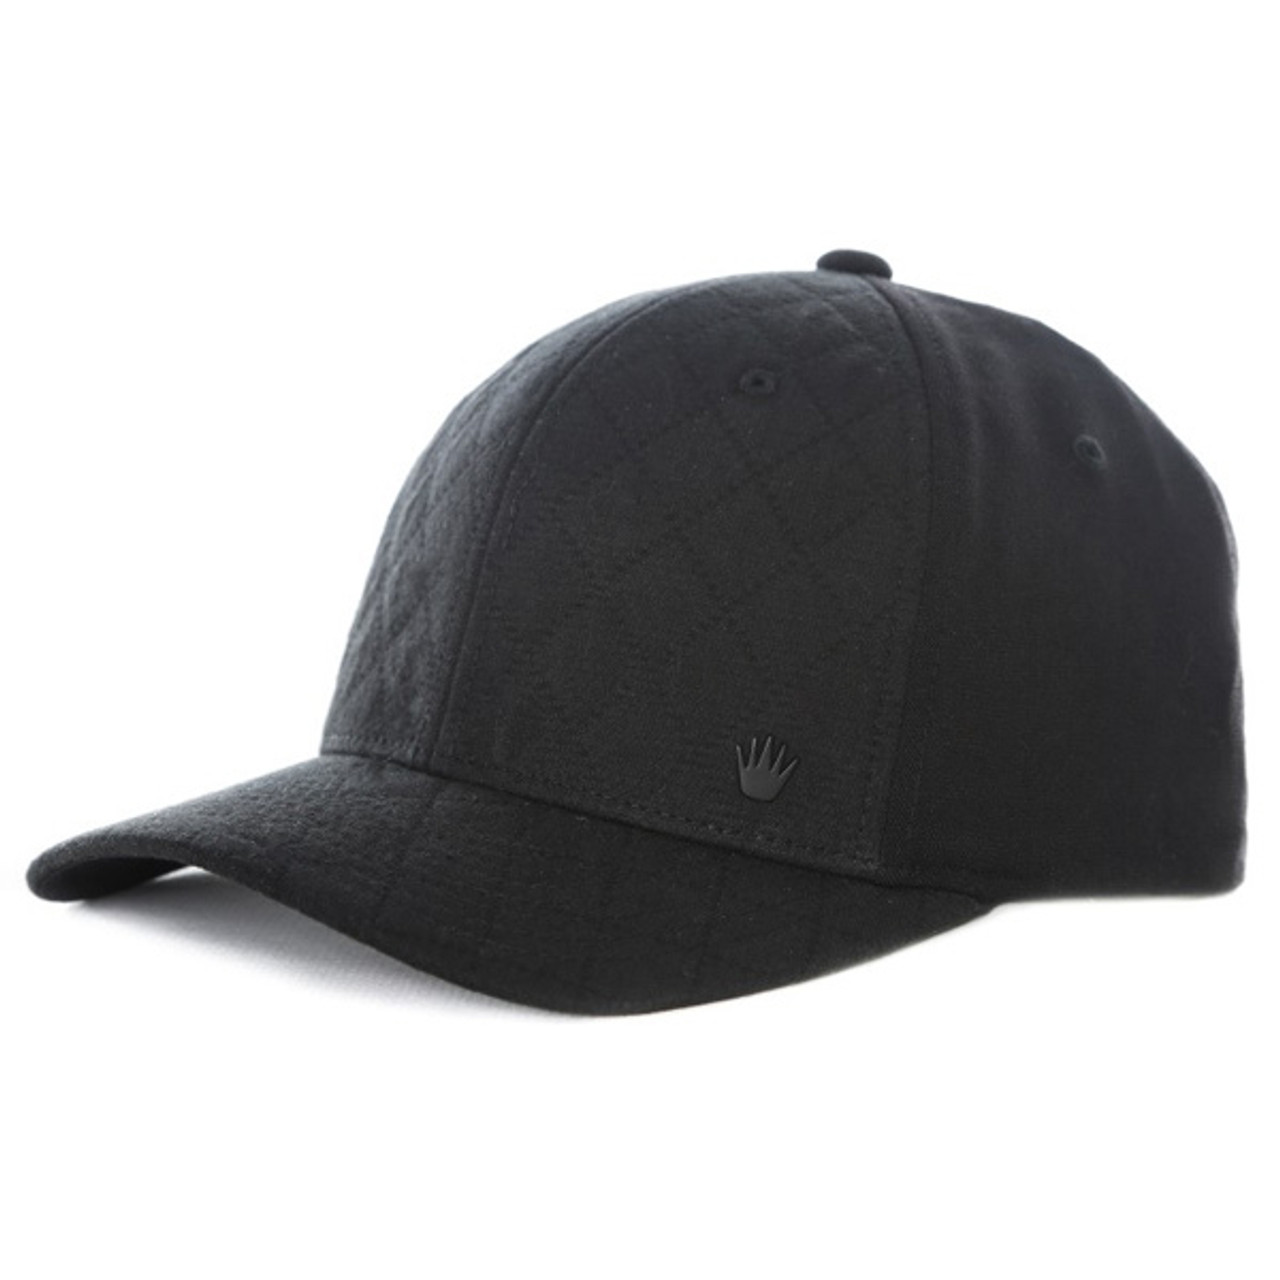 popular stores official images discount new product 0fd89 cae1a flexfit no bad ideas snapback hats ...